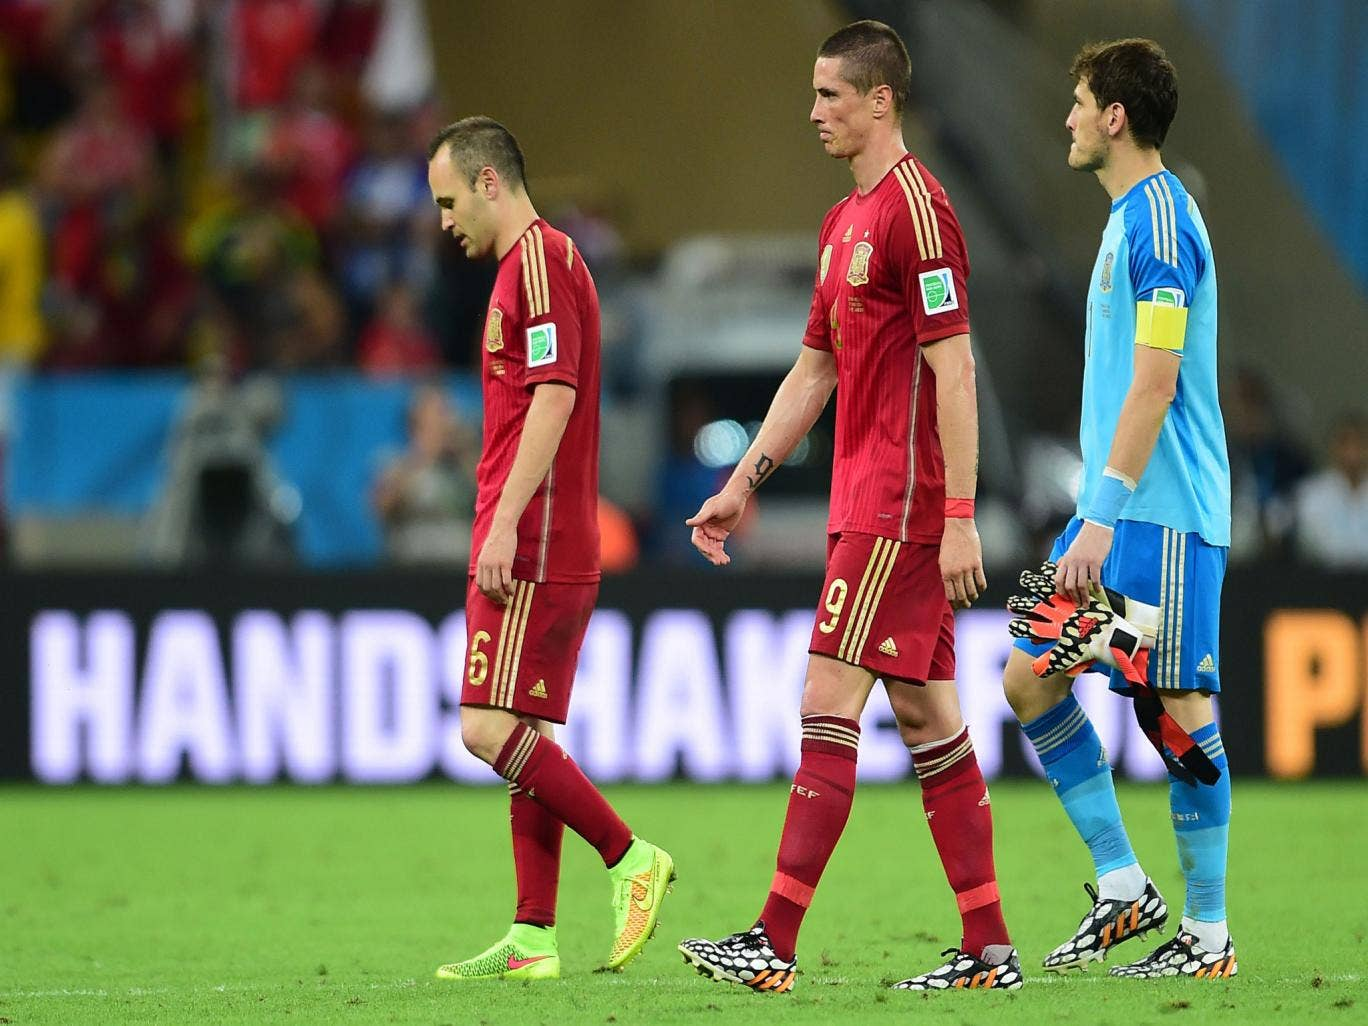 Spain are out of the World Cup after a 2-0 defeat to Chile